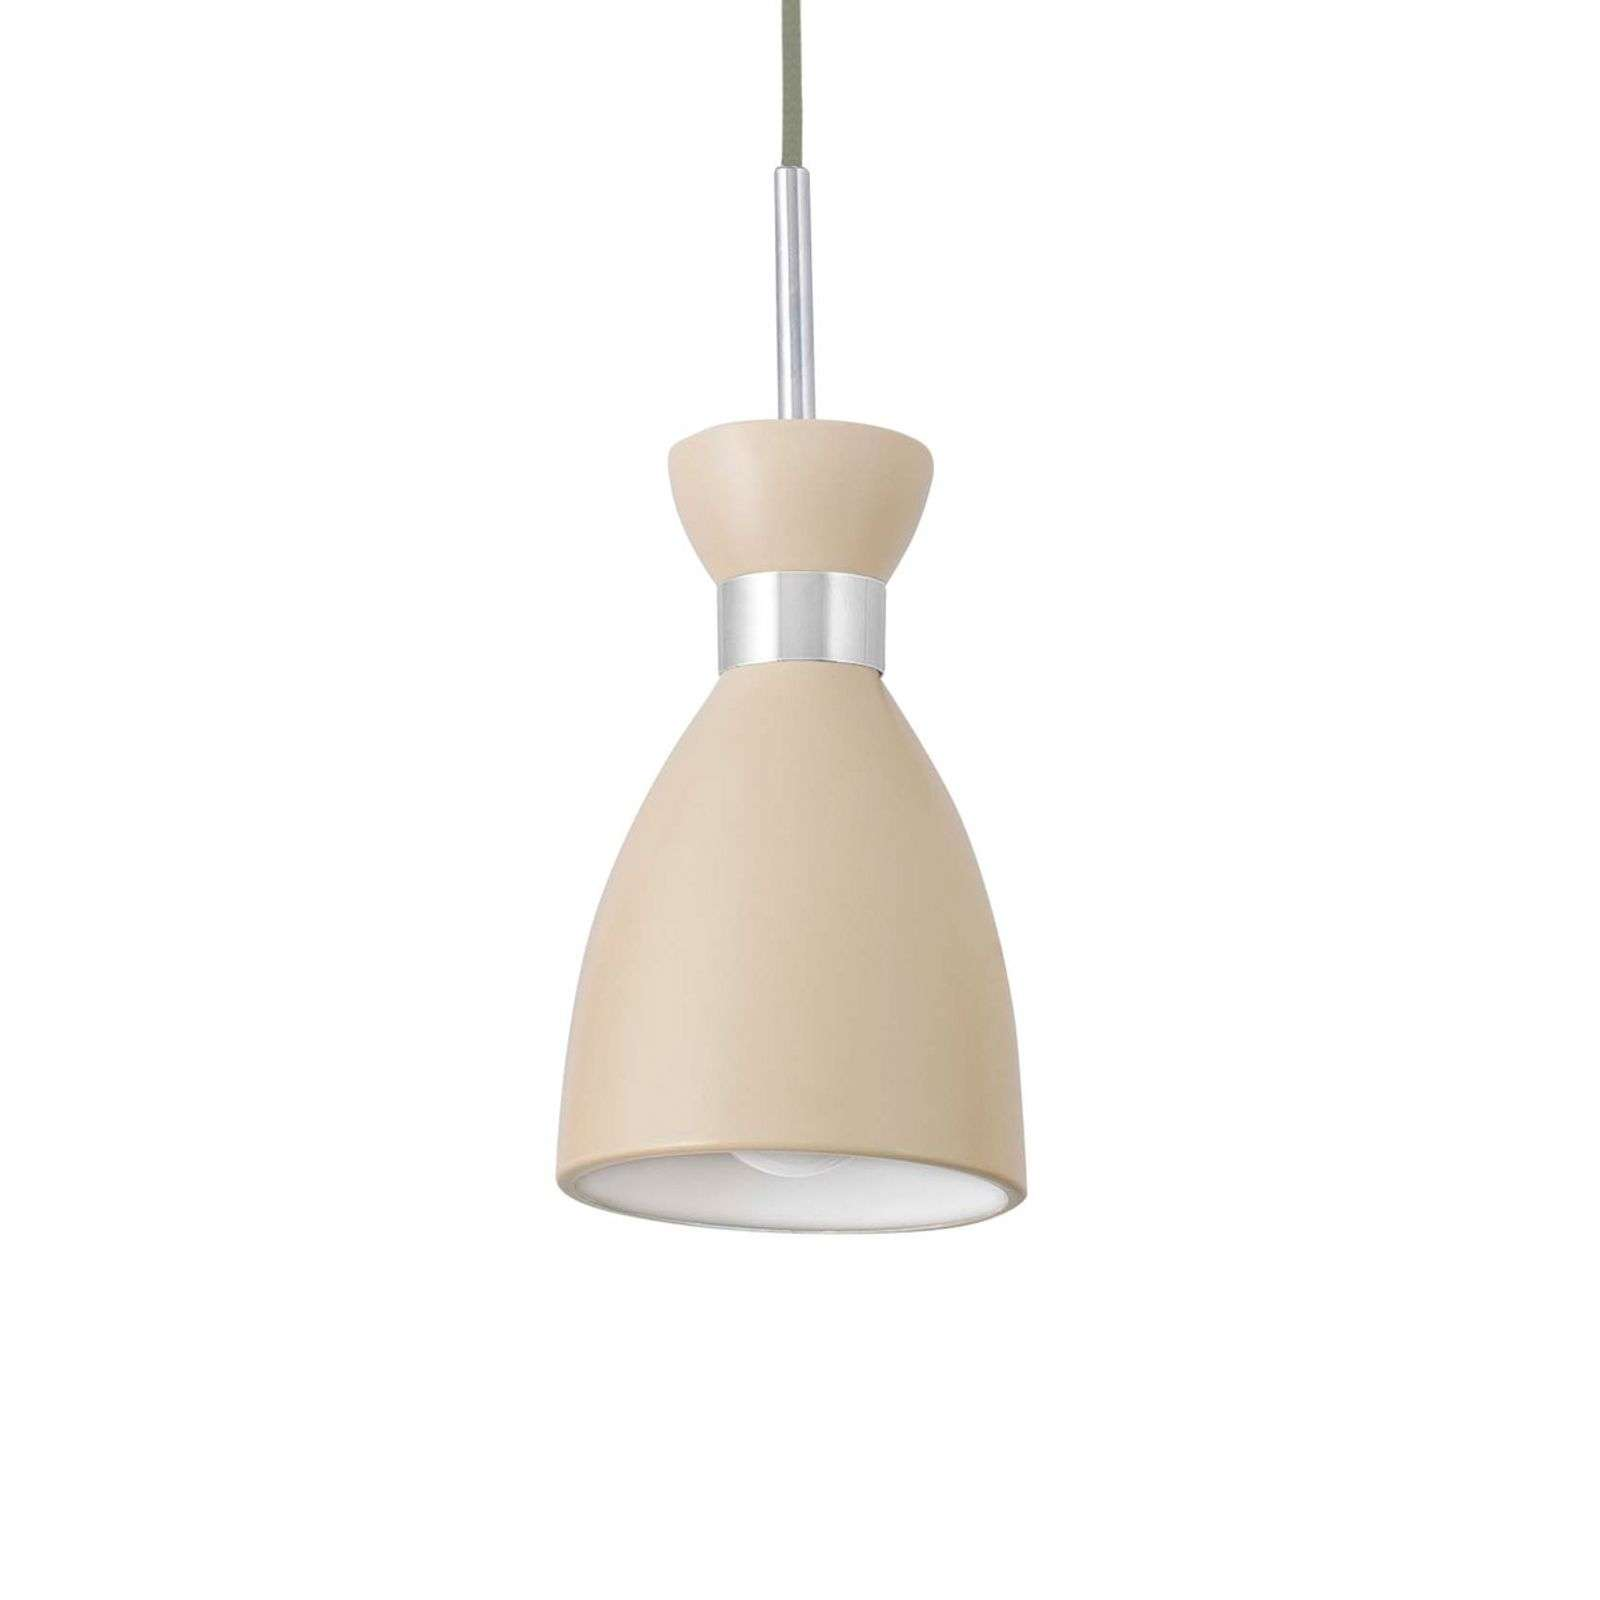 Suspension Retro beige